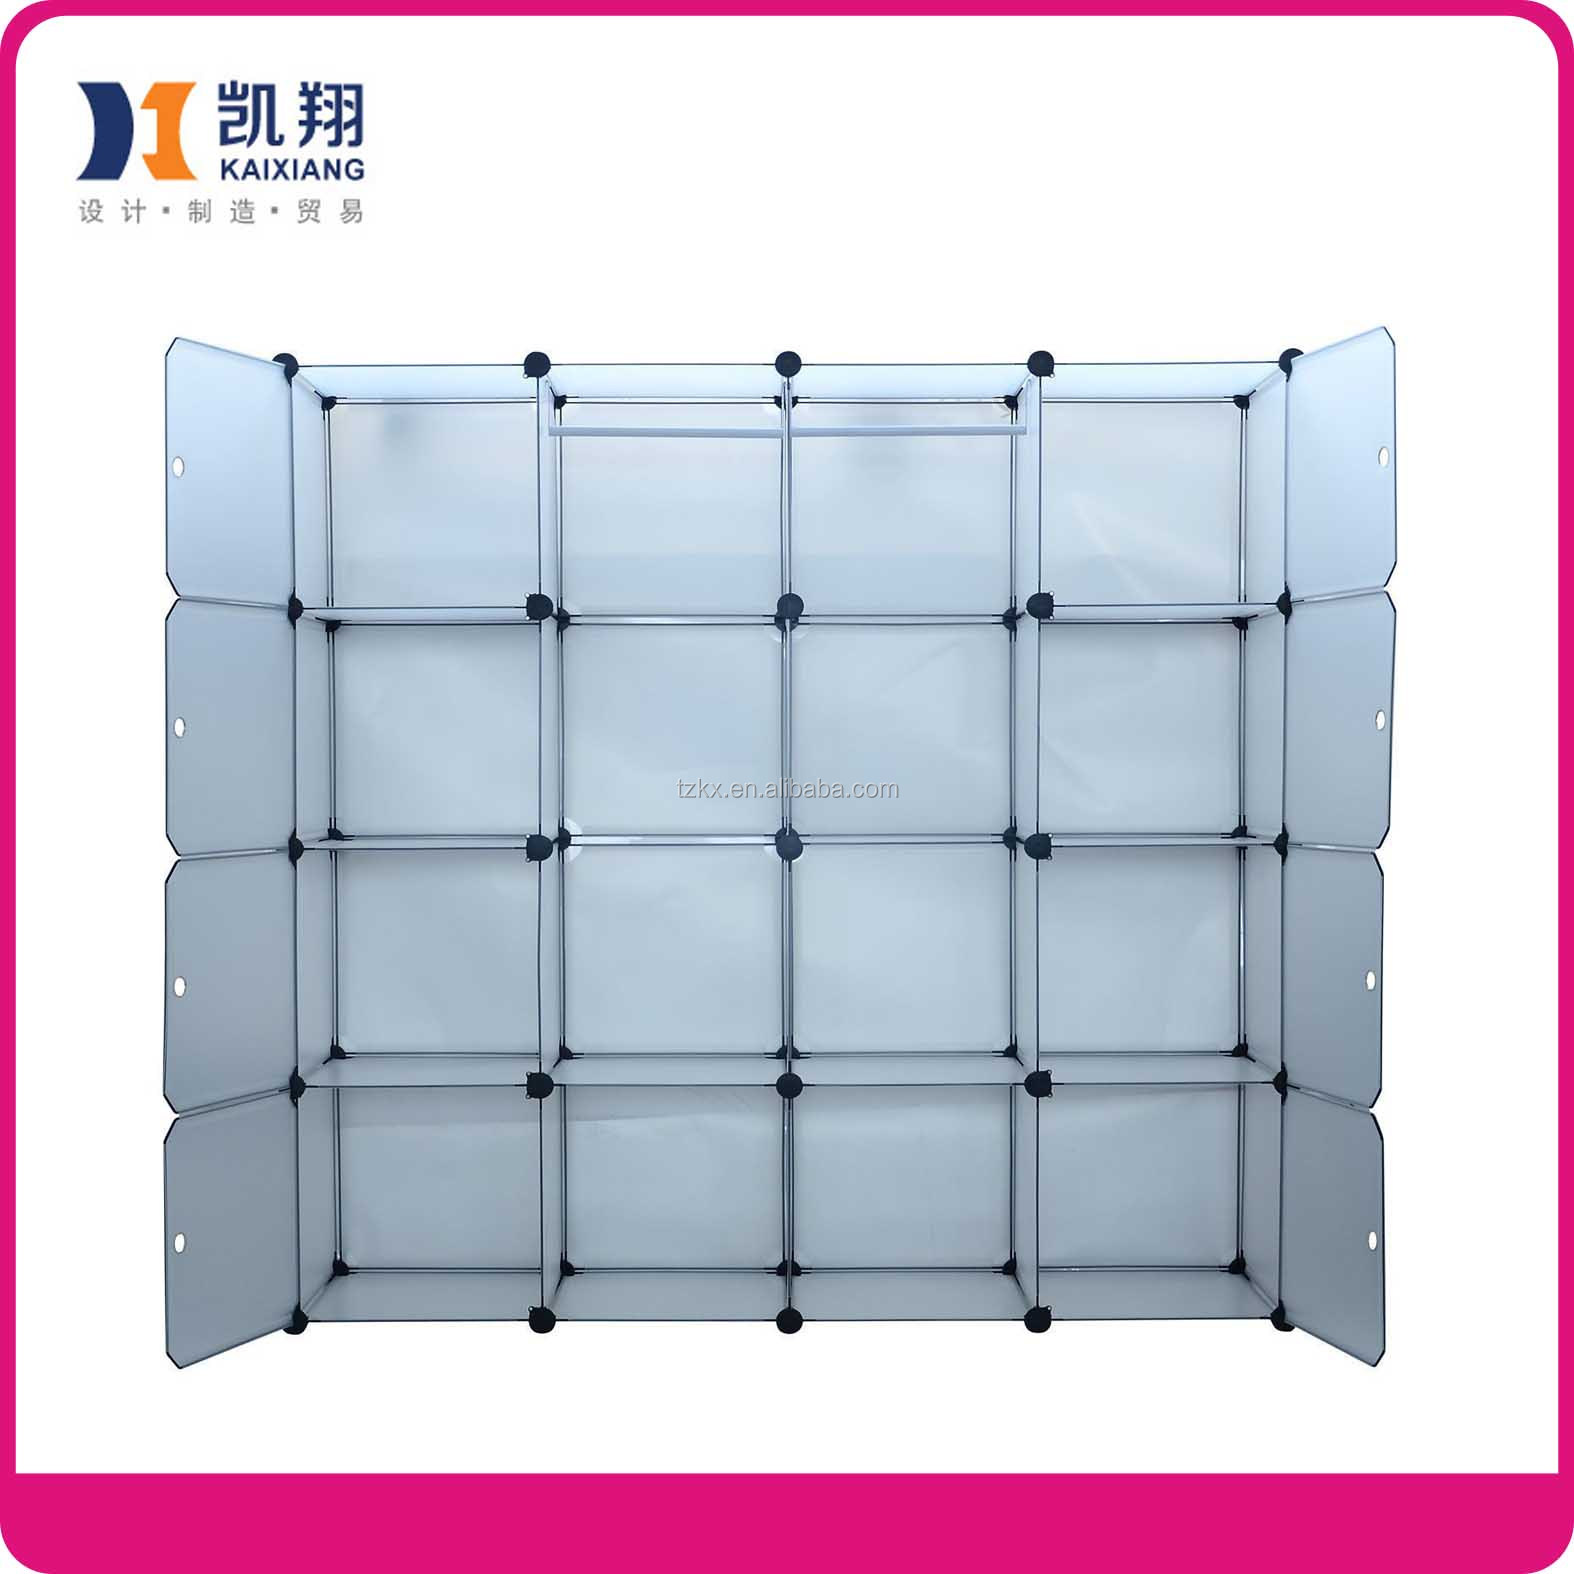 Plastic Folding Stackable Storage Cubes   Buy Plastic Storage Cubes Folding Storage  Cube Plastic Stackable Storage Cubes Product on Alibaba com. Plastic Folding Stackable Storage Cubes   Buy Plastic Storage